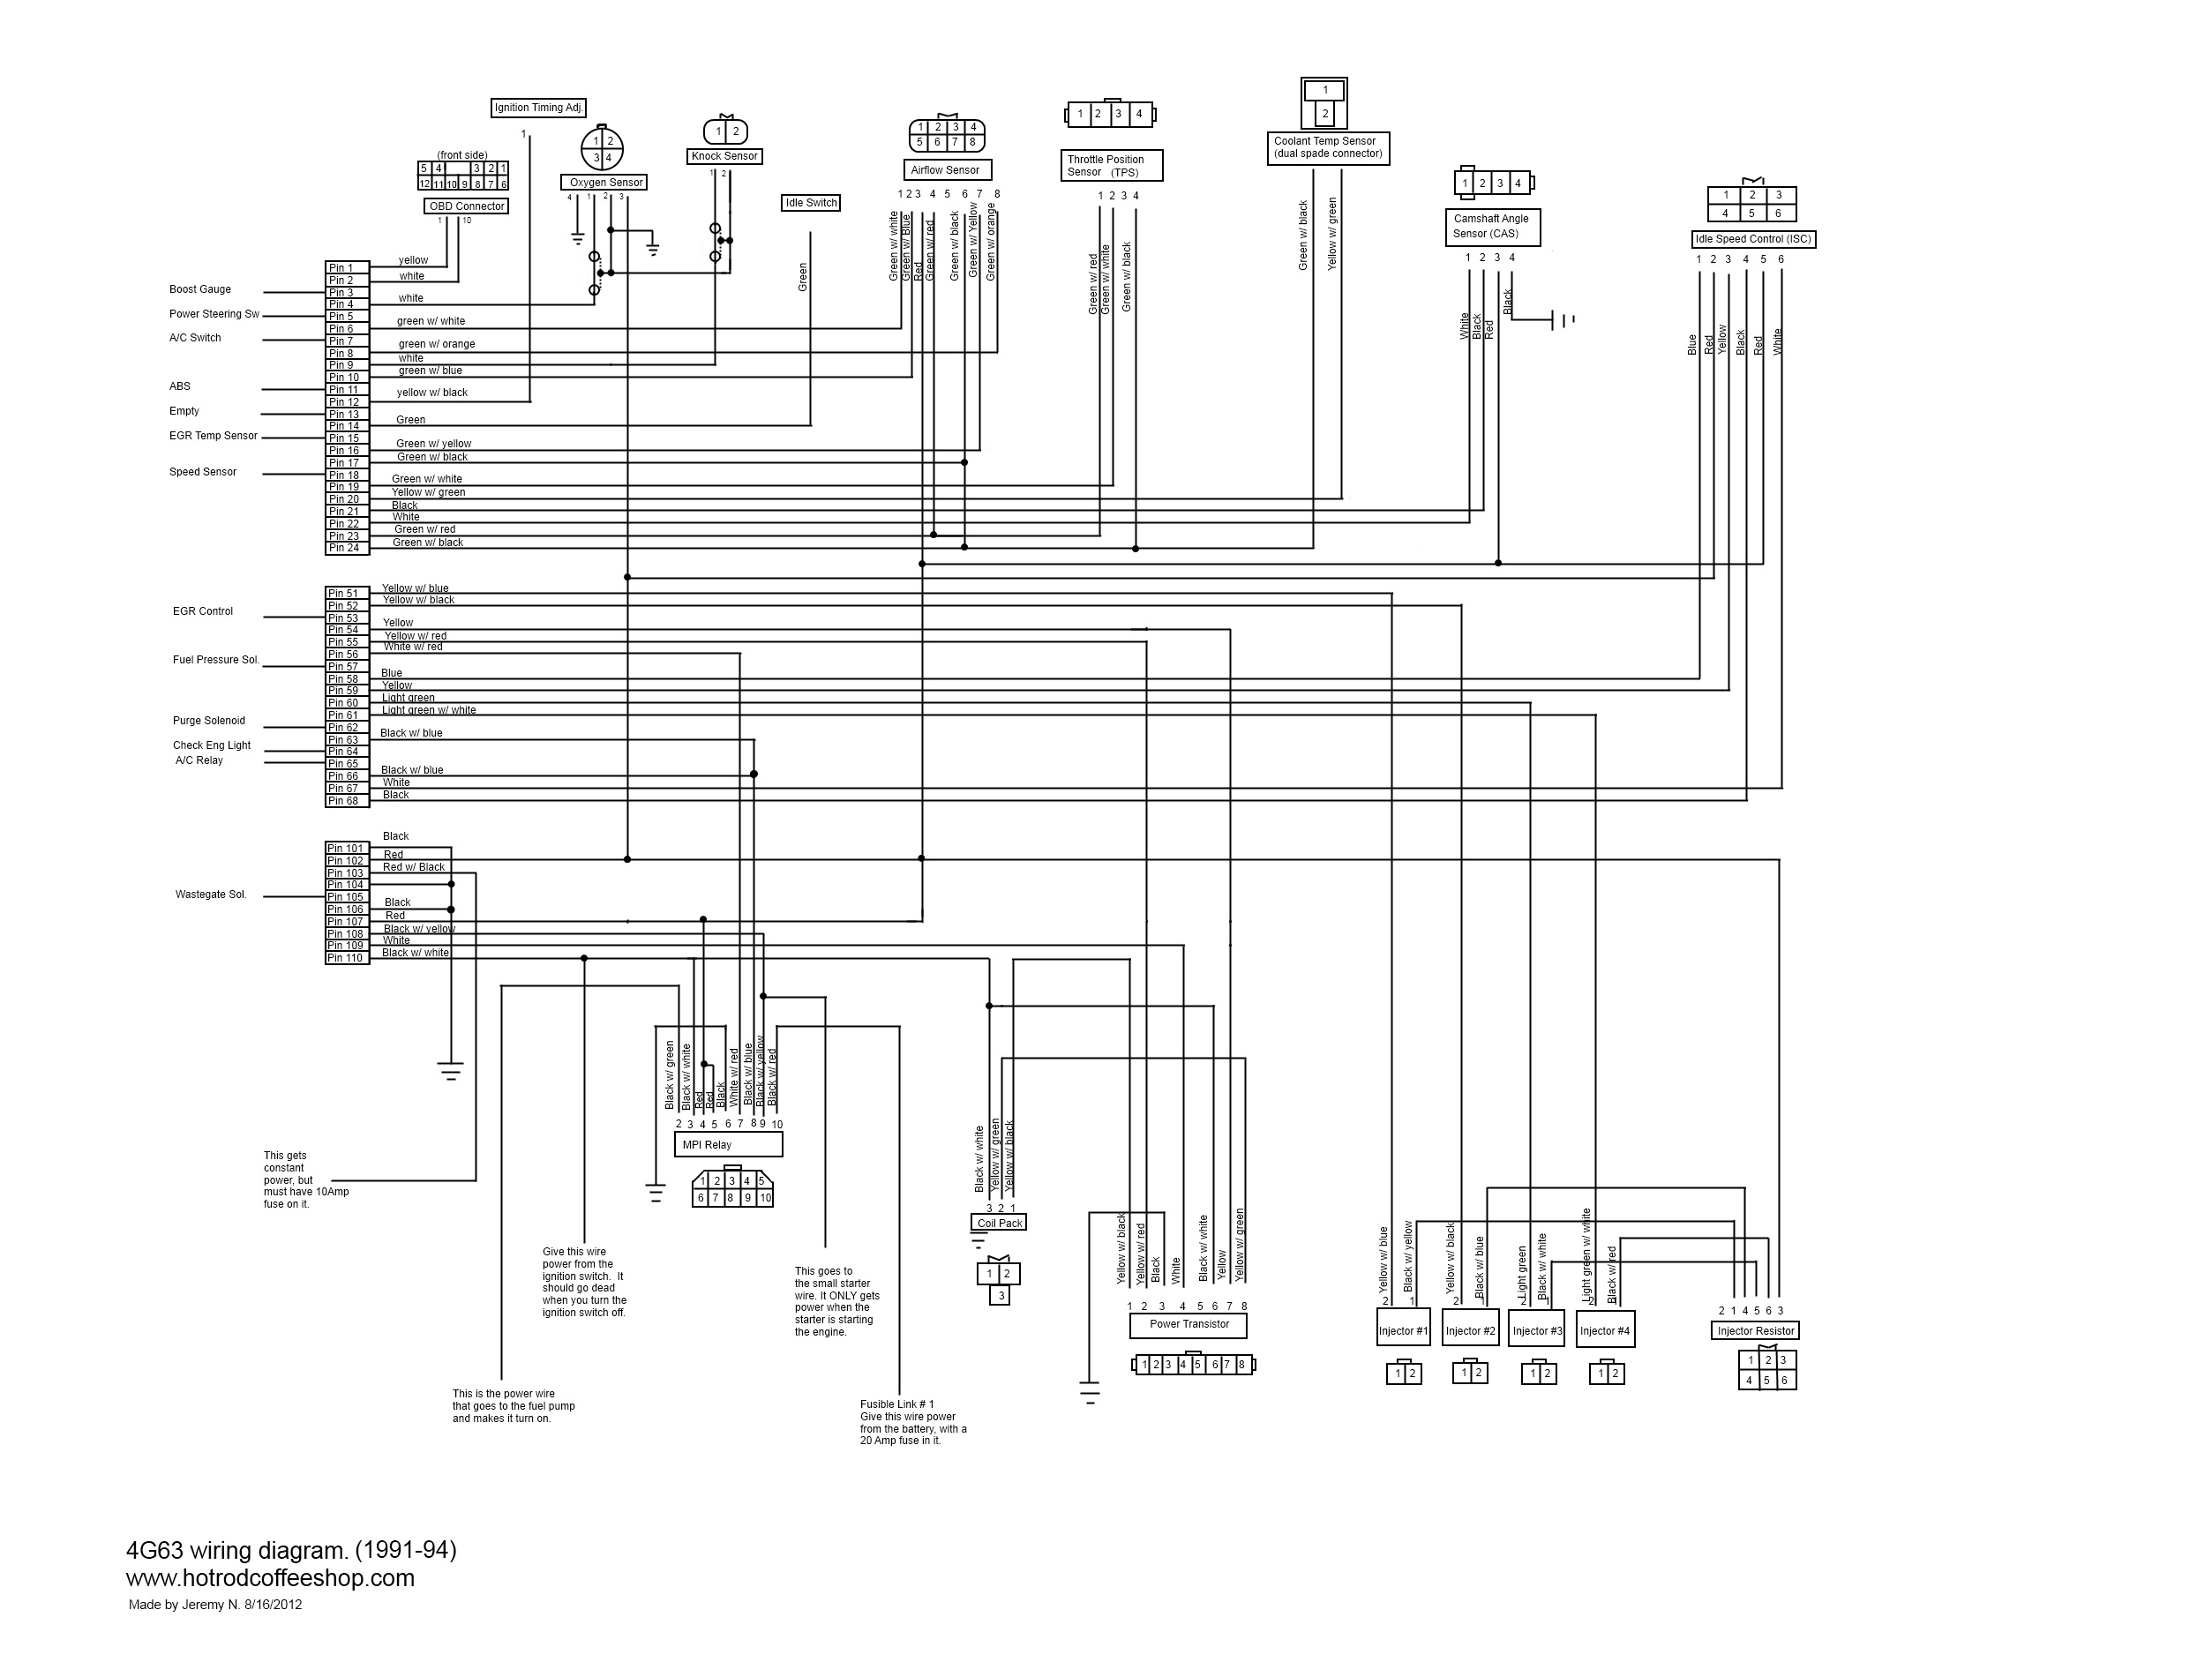 4g63ecudiagram_1 evo 3 wiring diagram led flasher wiring diagram \u2022 wiring diagrams R.C. Pro-Am Wii at bayanpartner.co